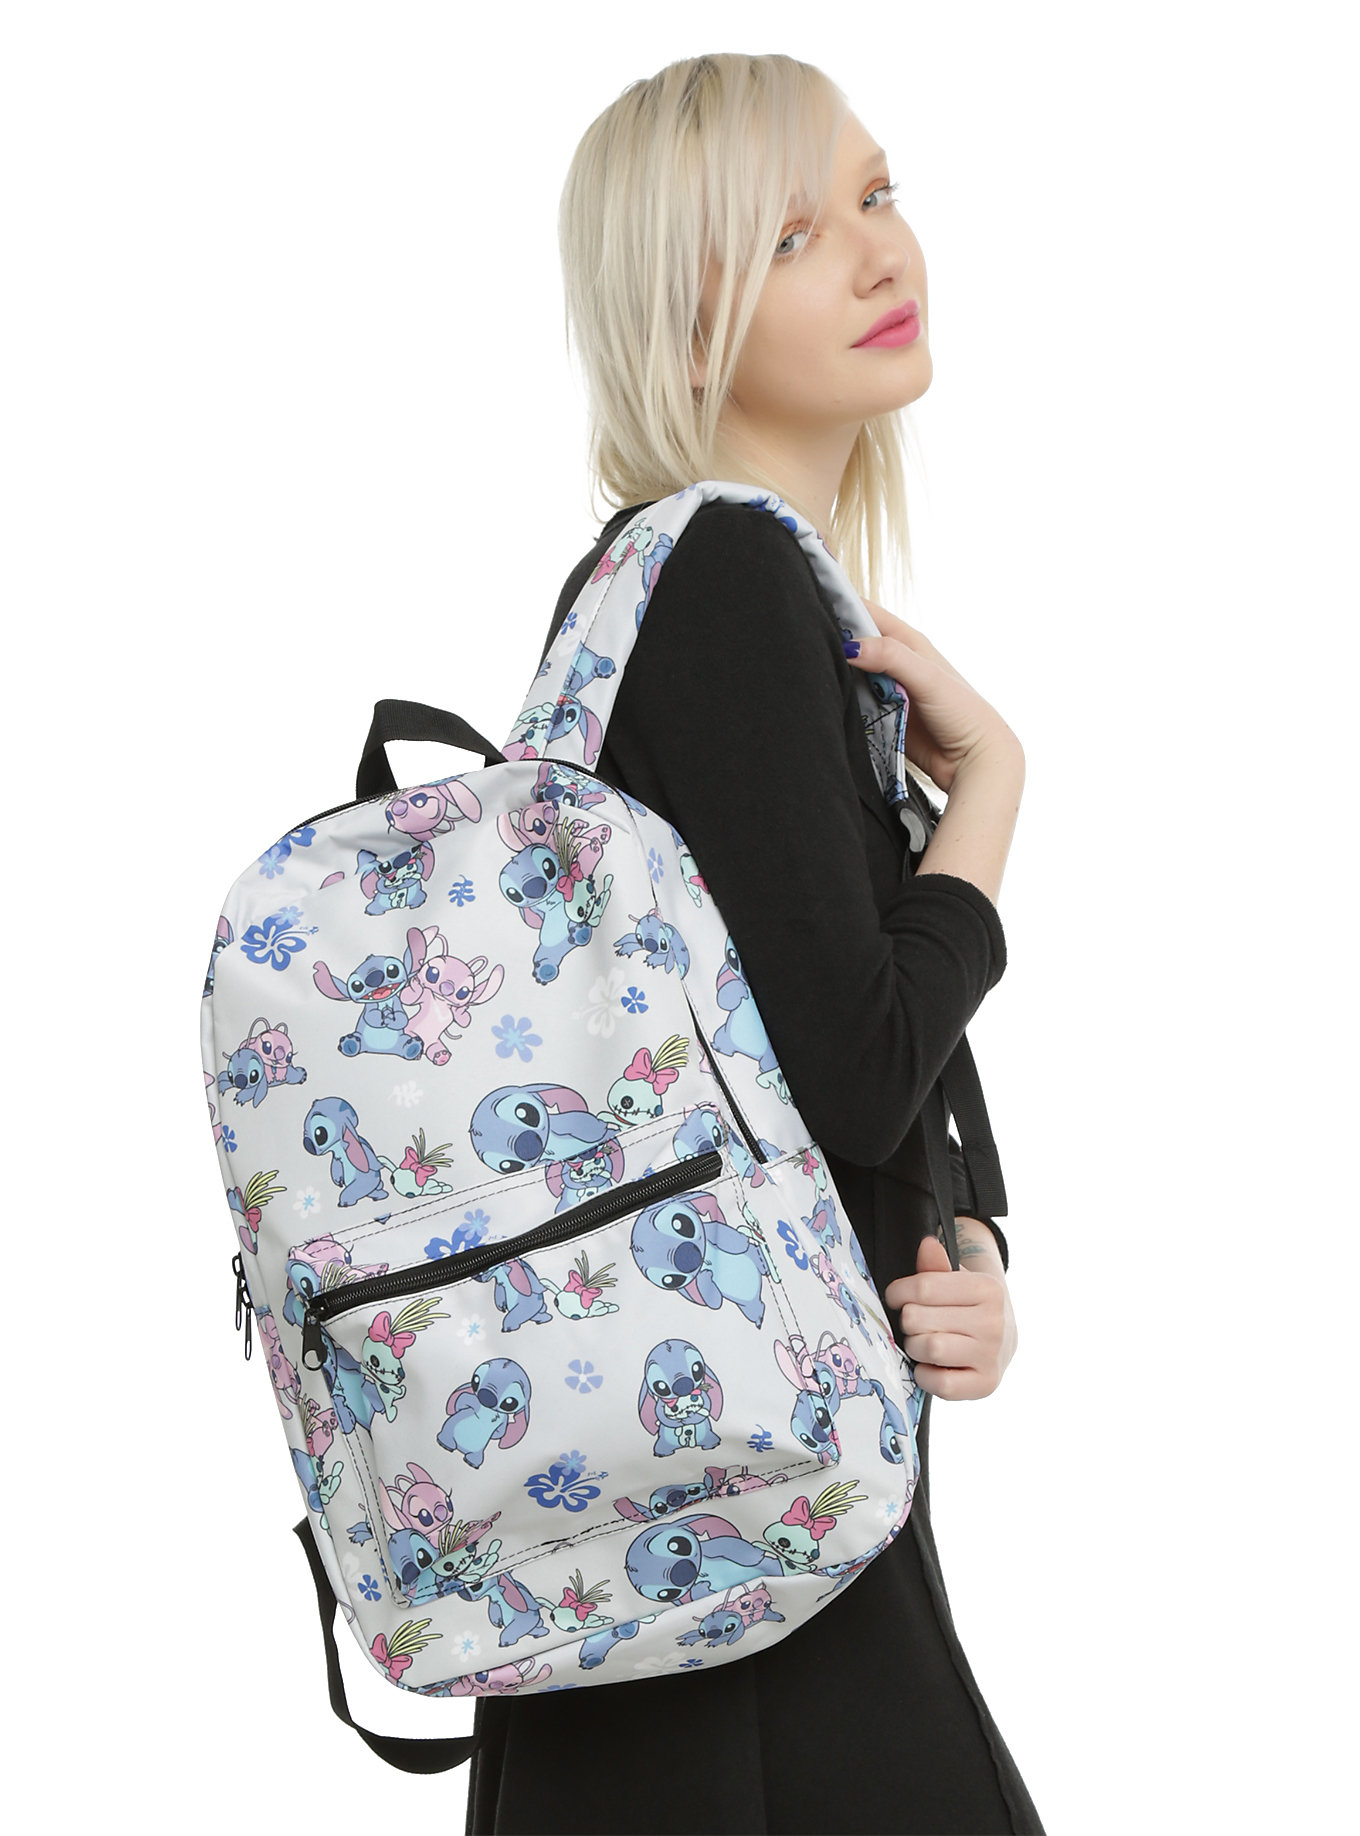 Disney Backpacks On Sale at Hot Topic